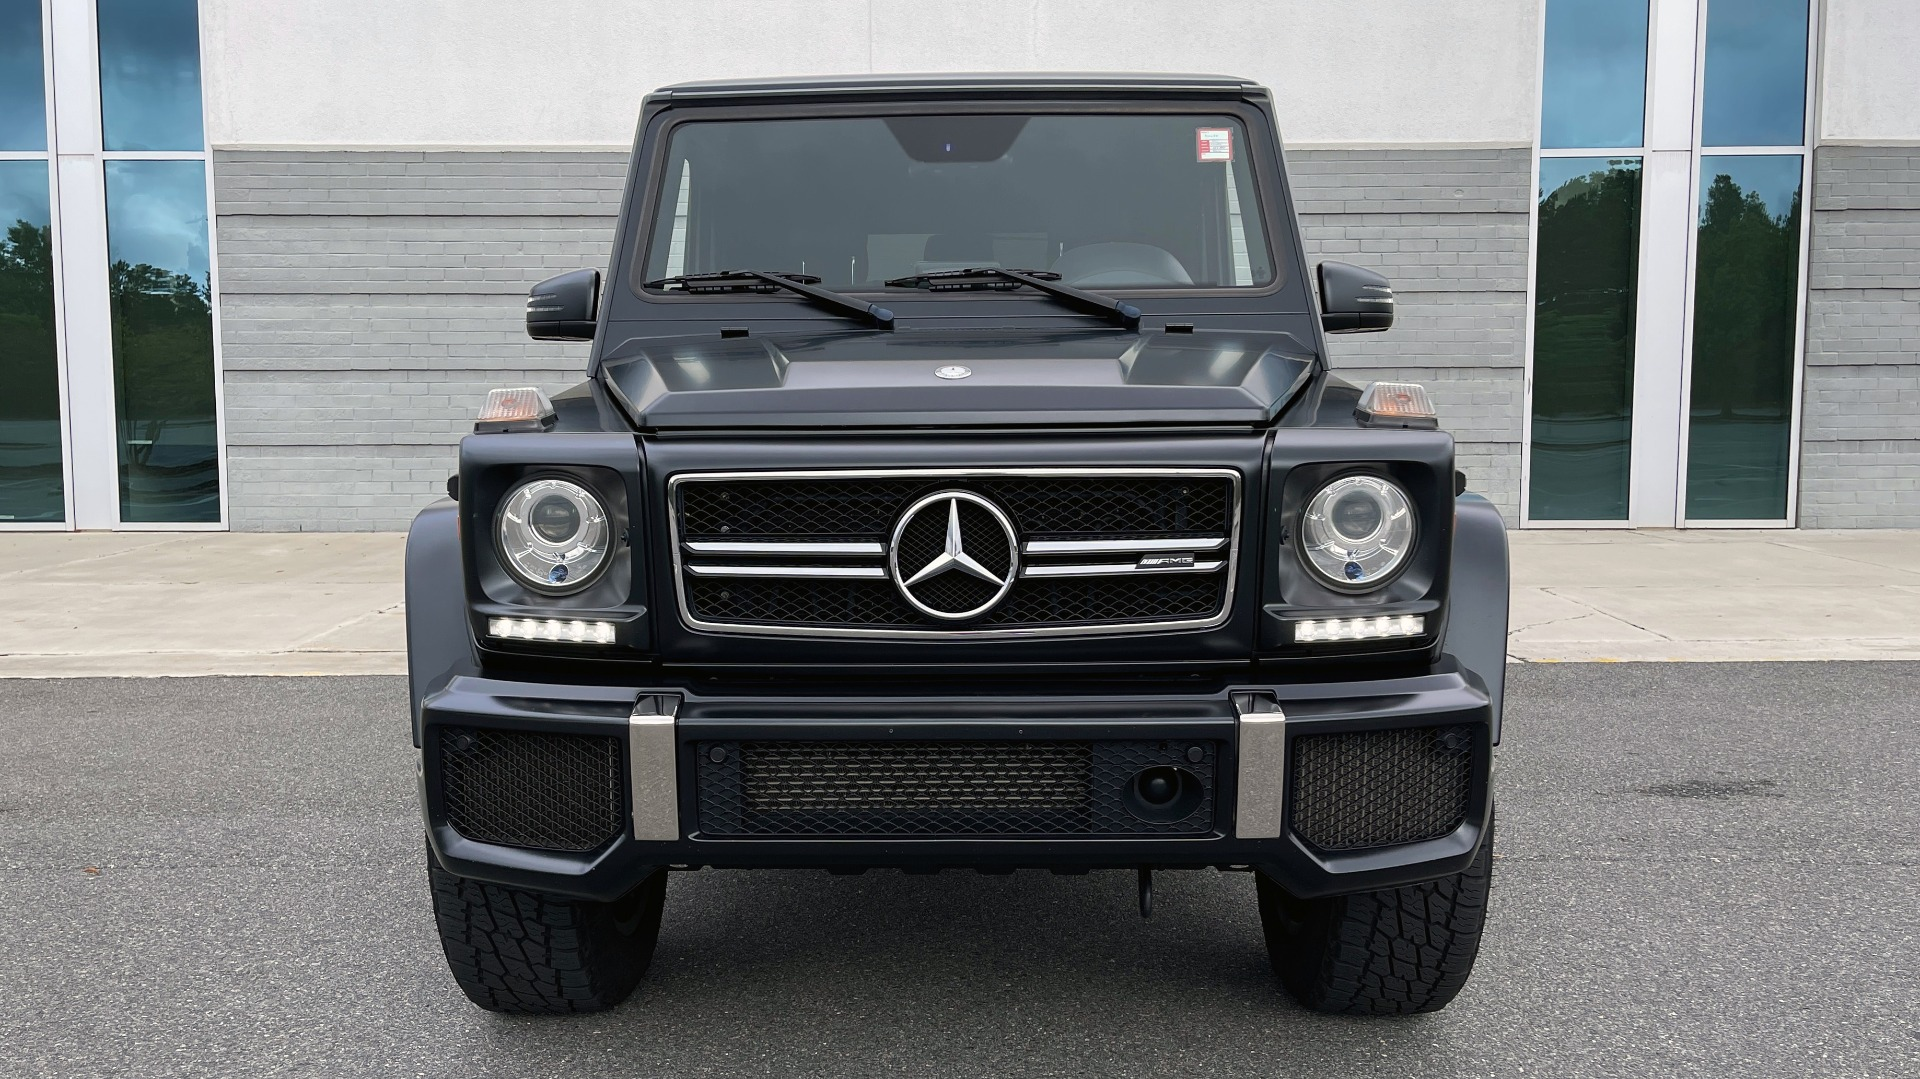 Used 2017 Mercedes-Benz G-CLASS AMG G 63 / DESIGNO PKG / NAV / SUNROOF / H/K SND / REARVIEW for sale $124,999 at Formula Imports in Charlotte NC 28227 19